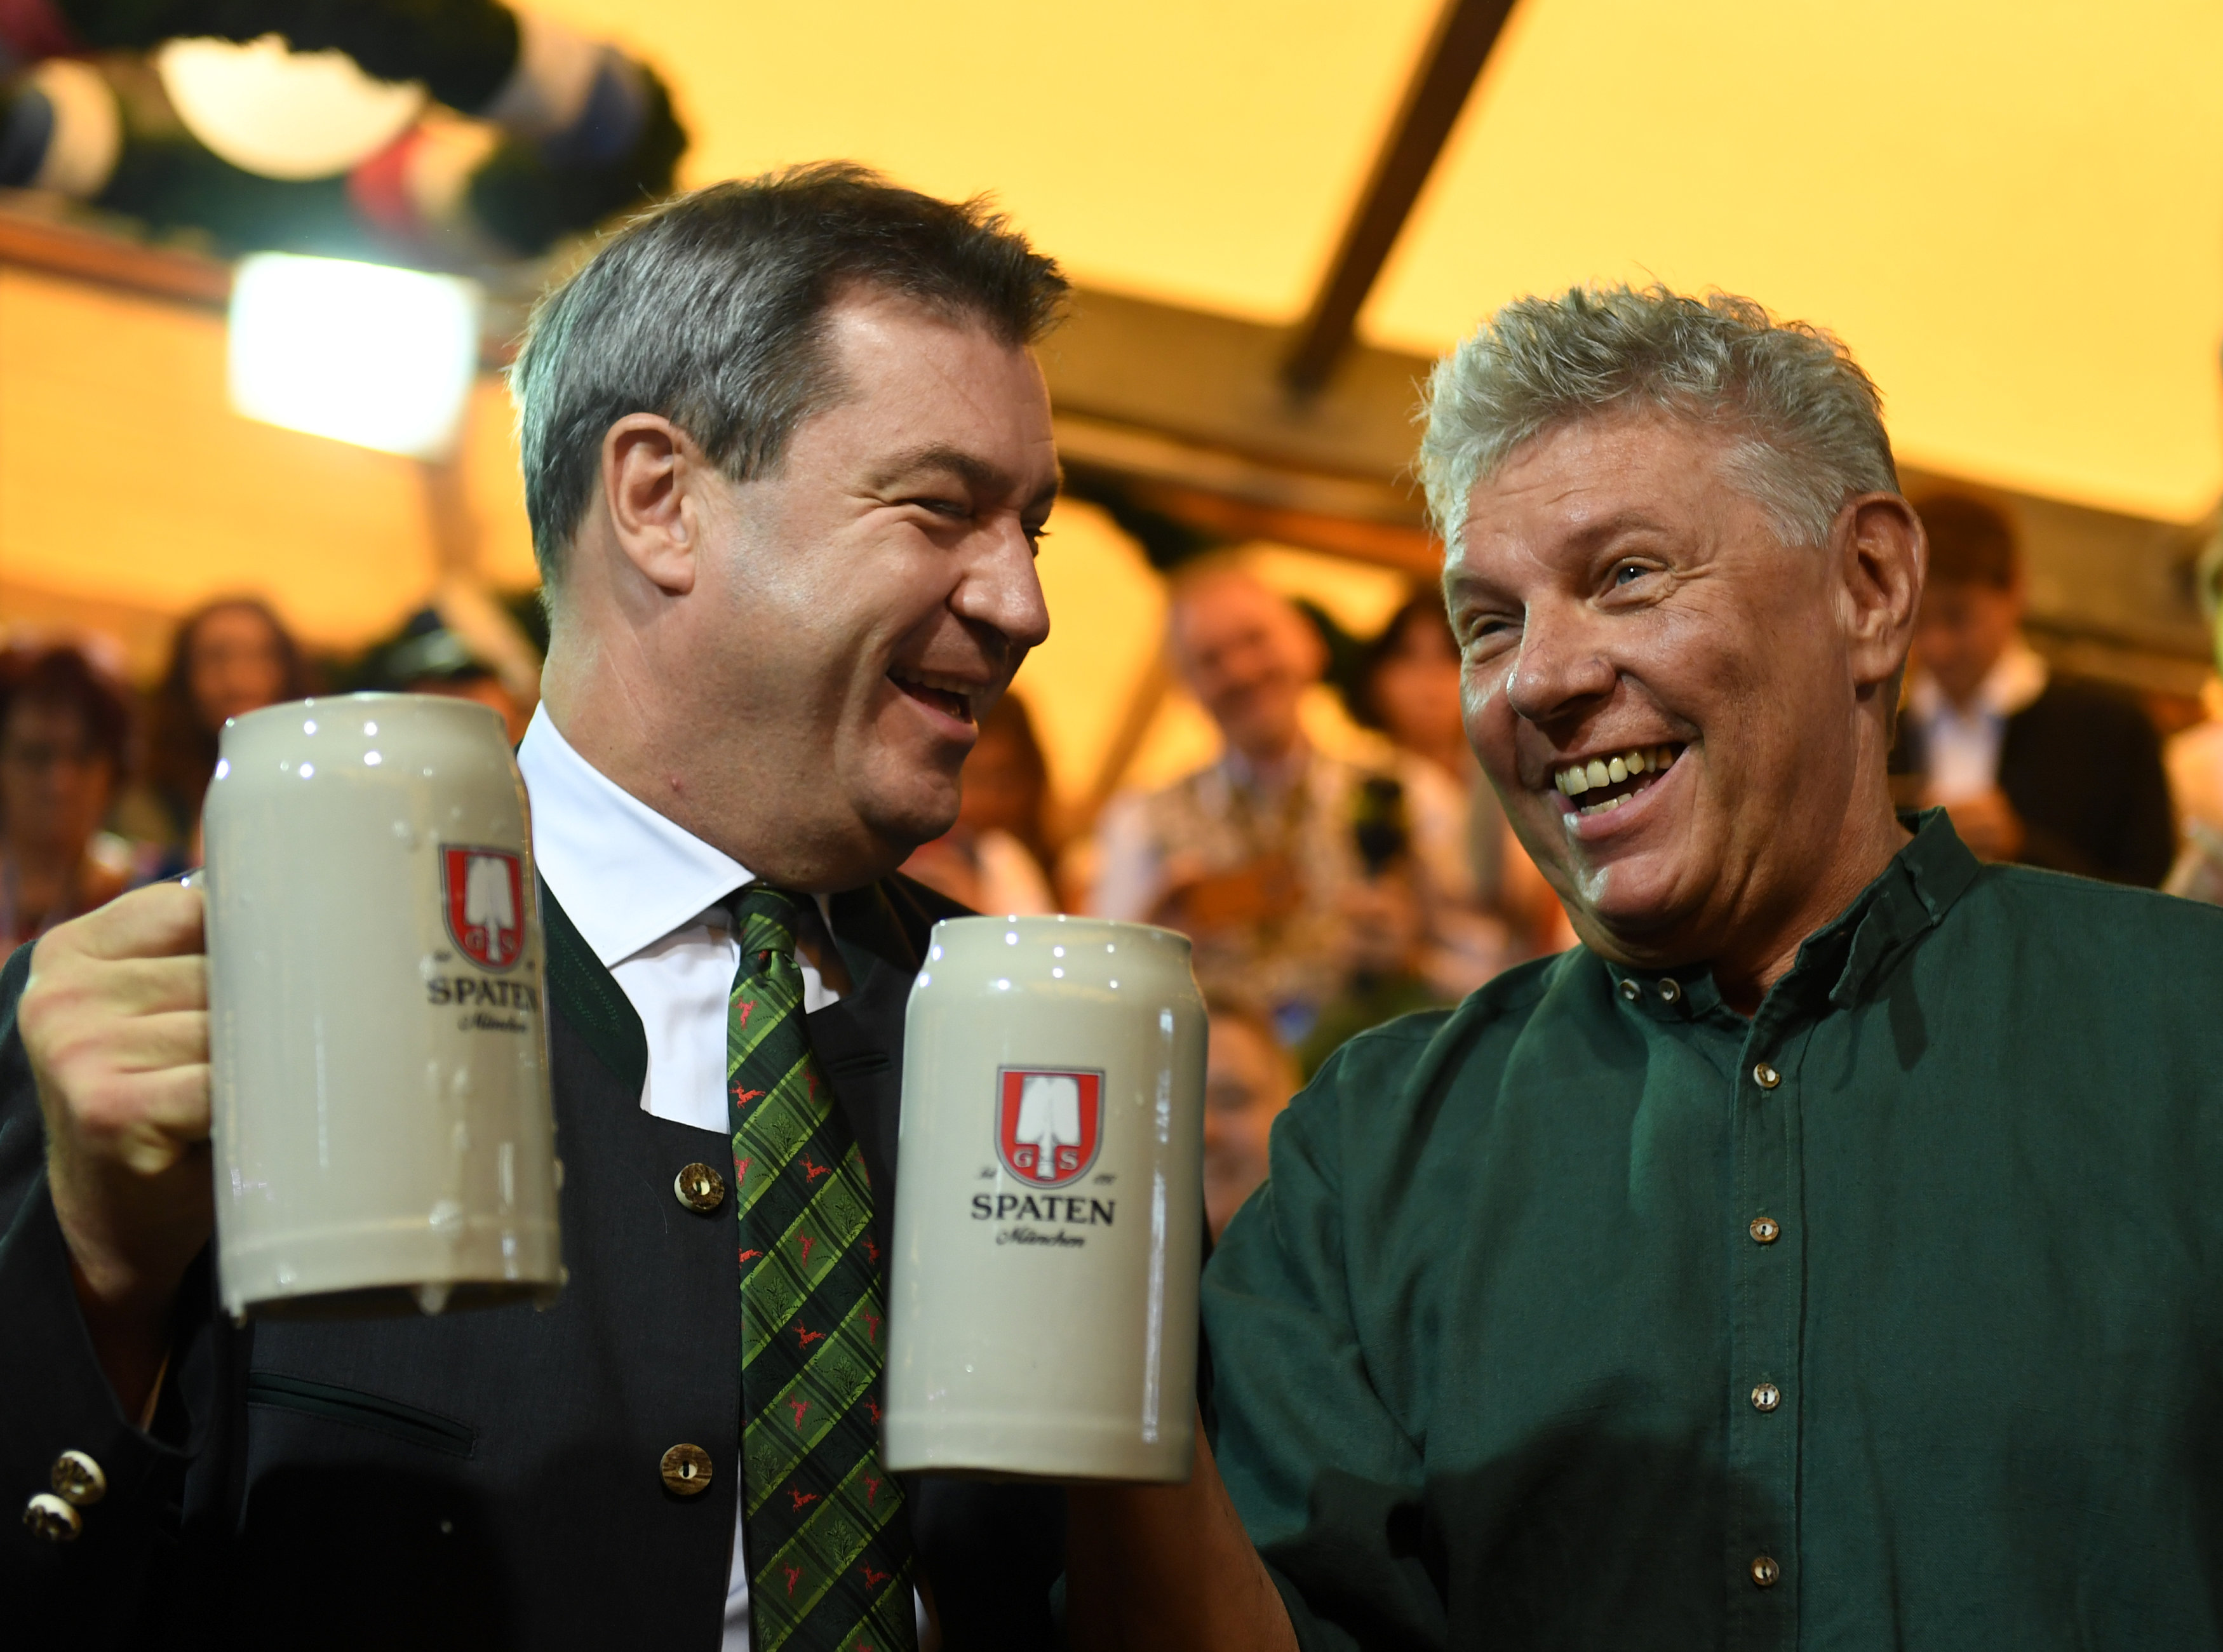 Munich mayor Dieter Reiter and Bavarian State Prime Minister Markus Soeder toast with beers at the opening day of the 185th Oktoberfest in Munich